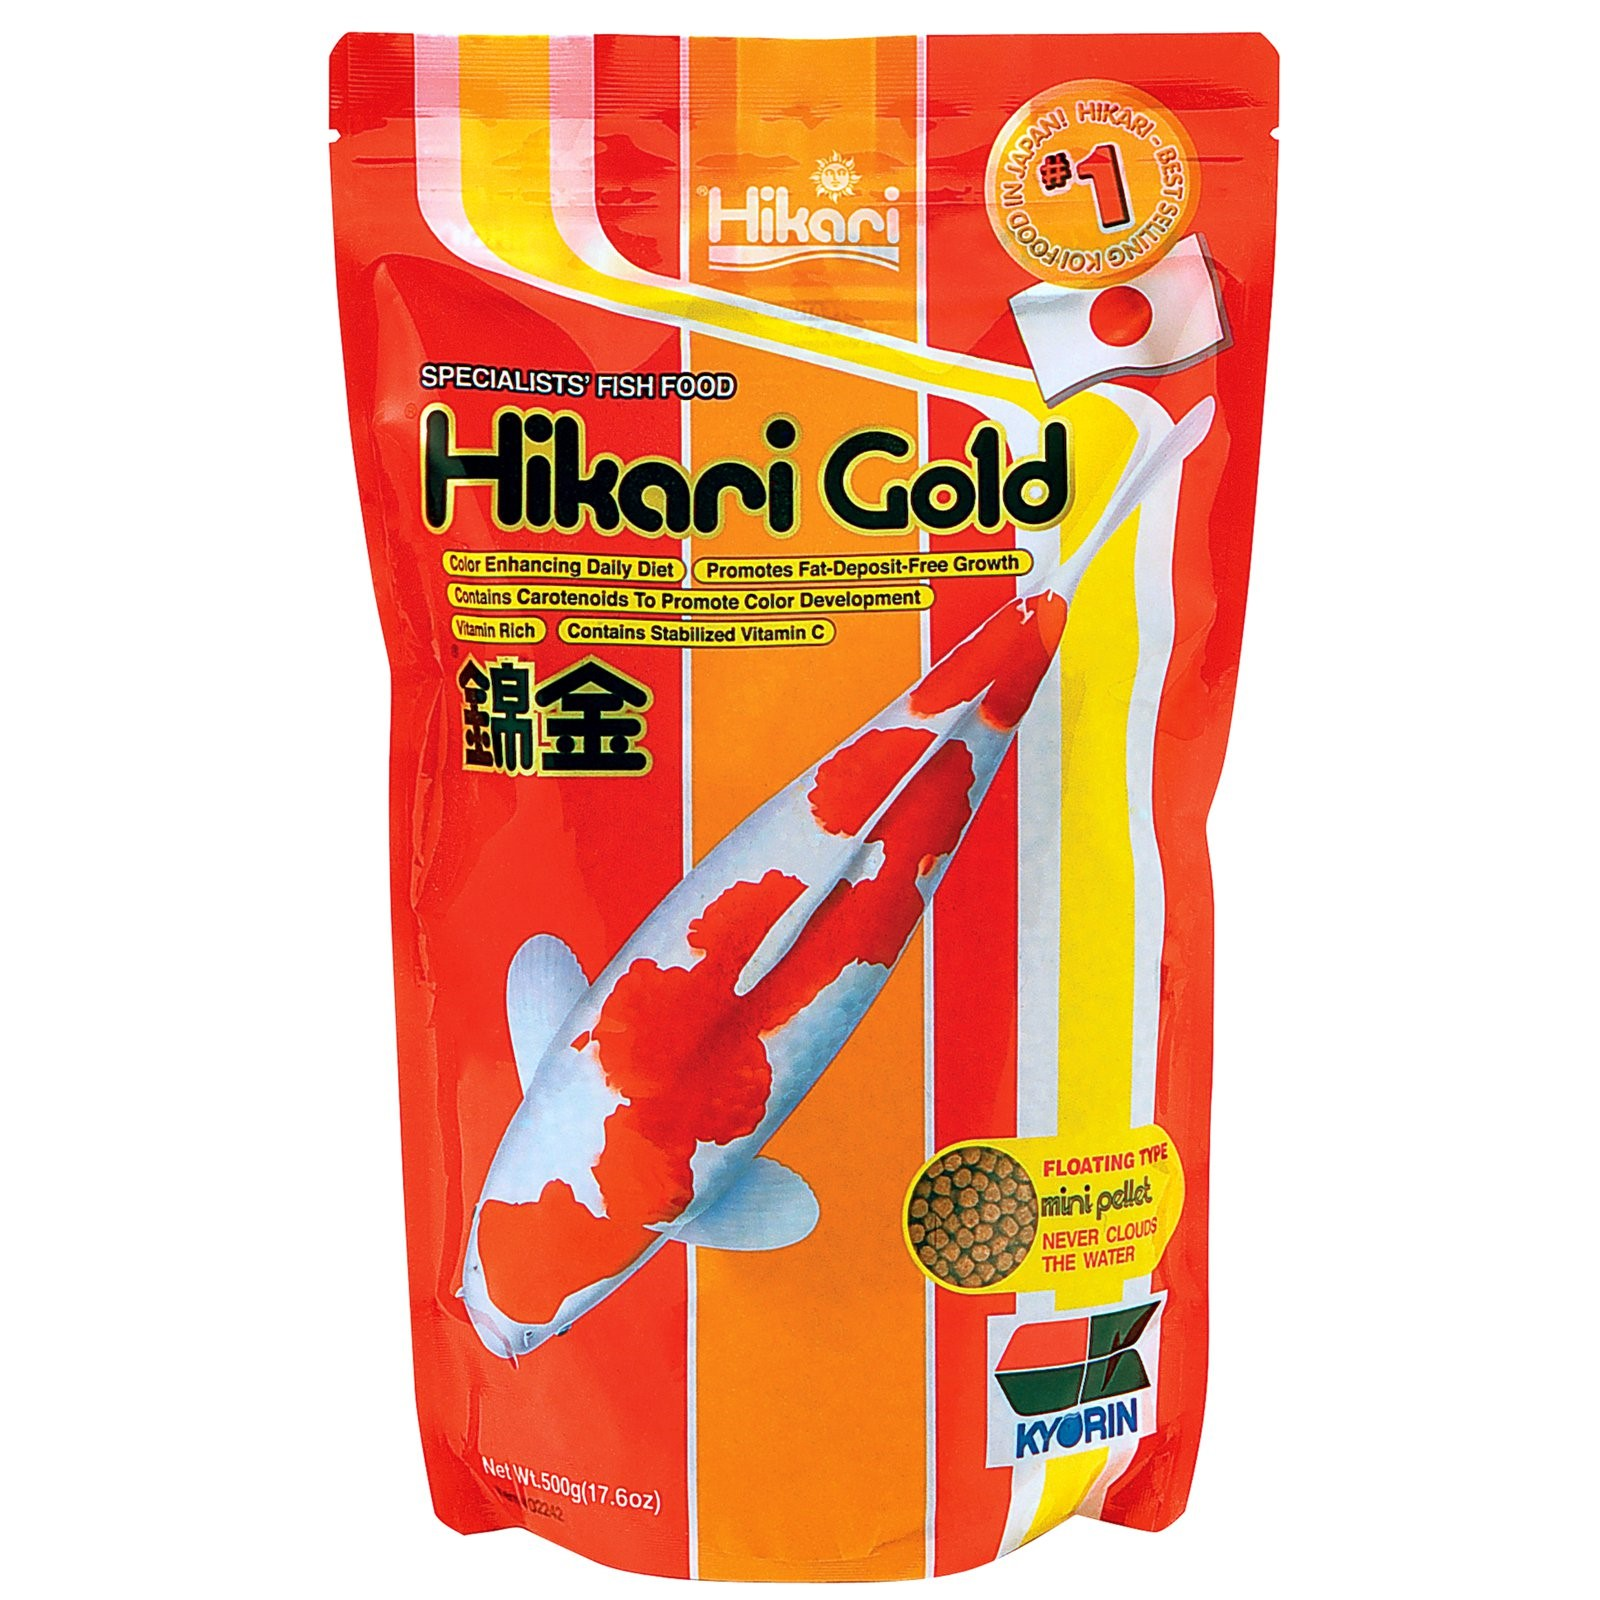 Hikari Gold Koi Mini Pellet Fish Food, 17.6 Oz